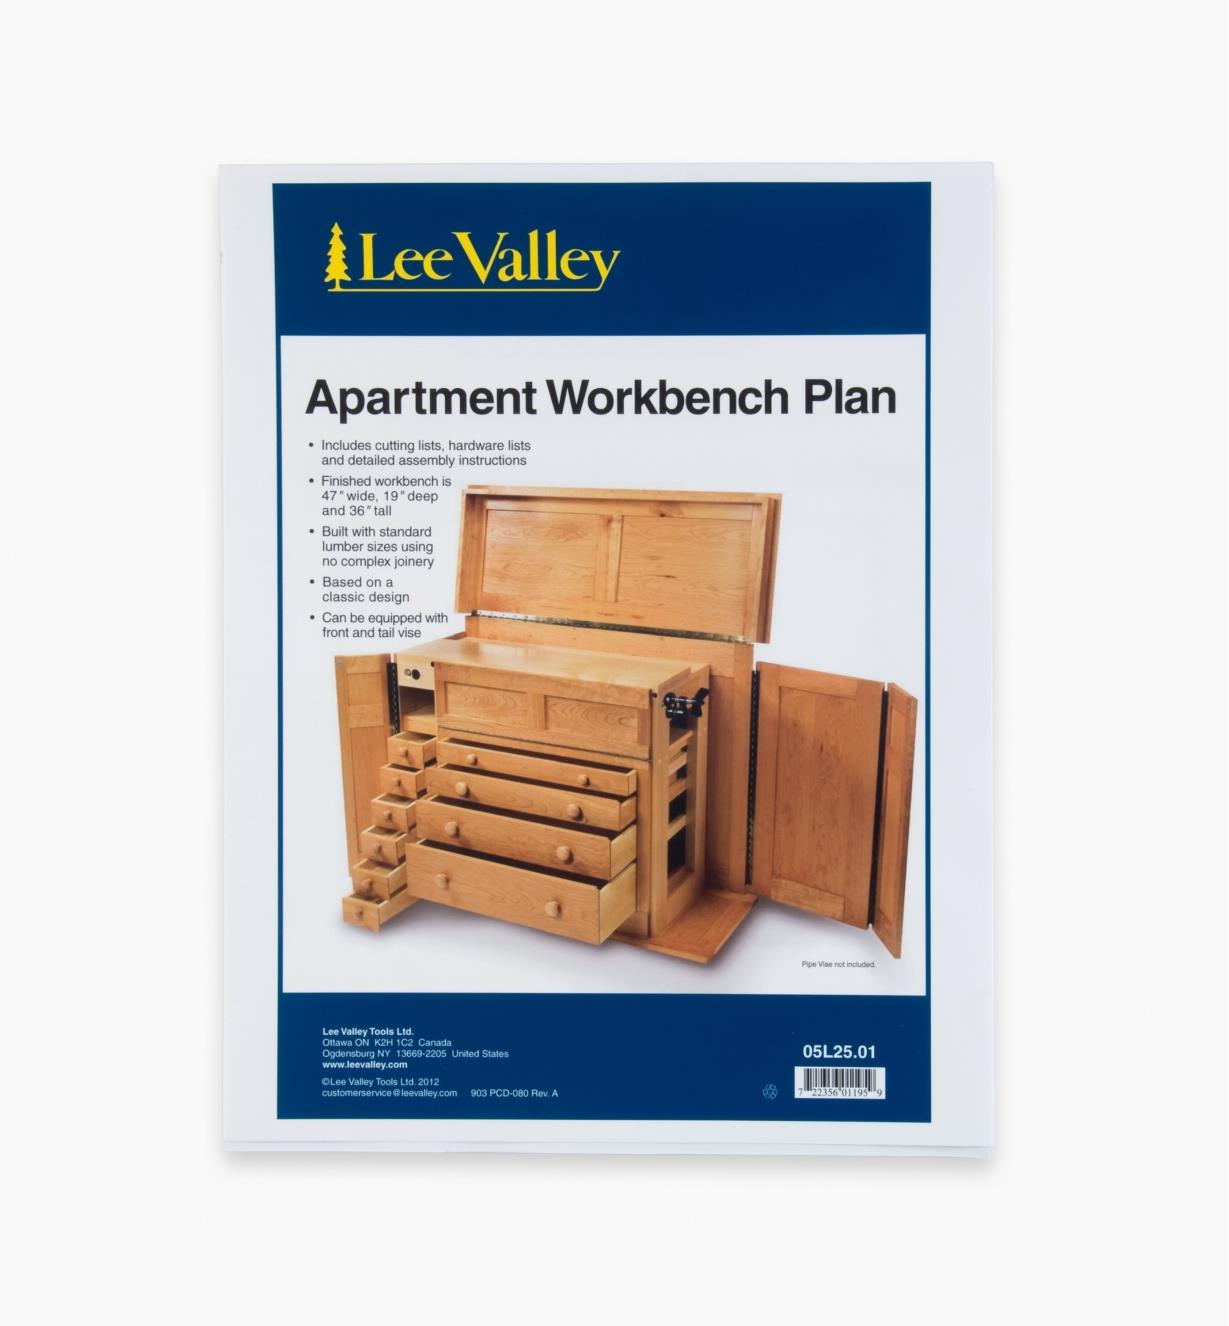 Apartment Workbench Plan